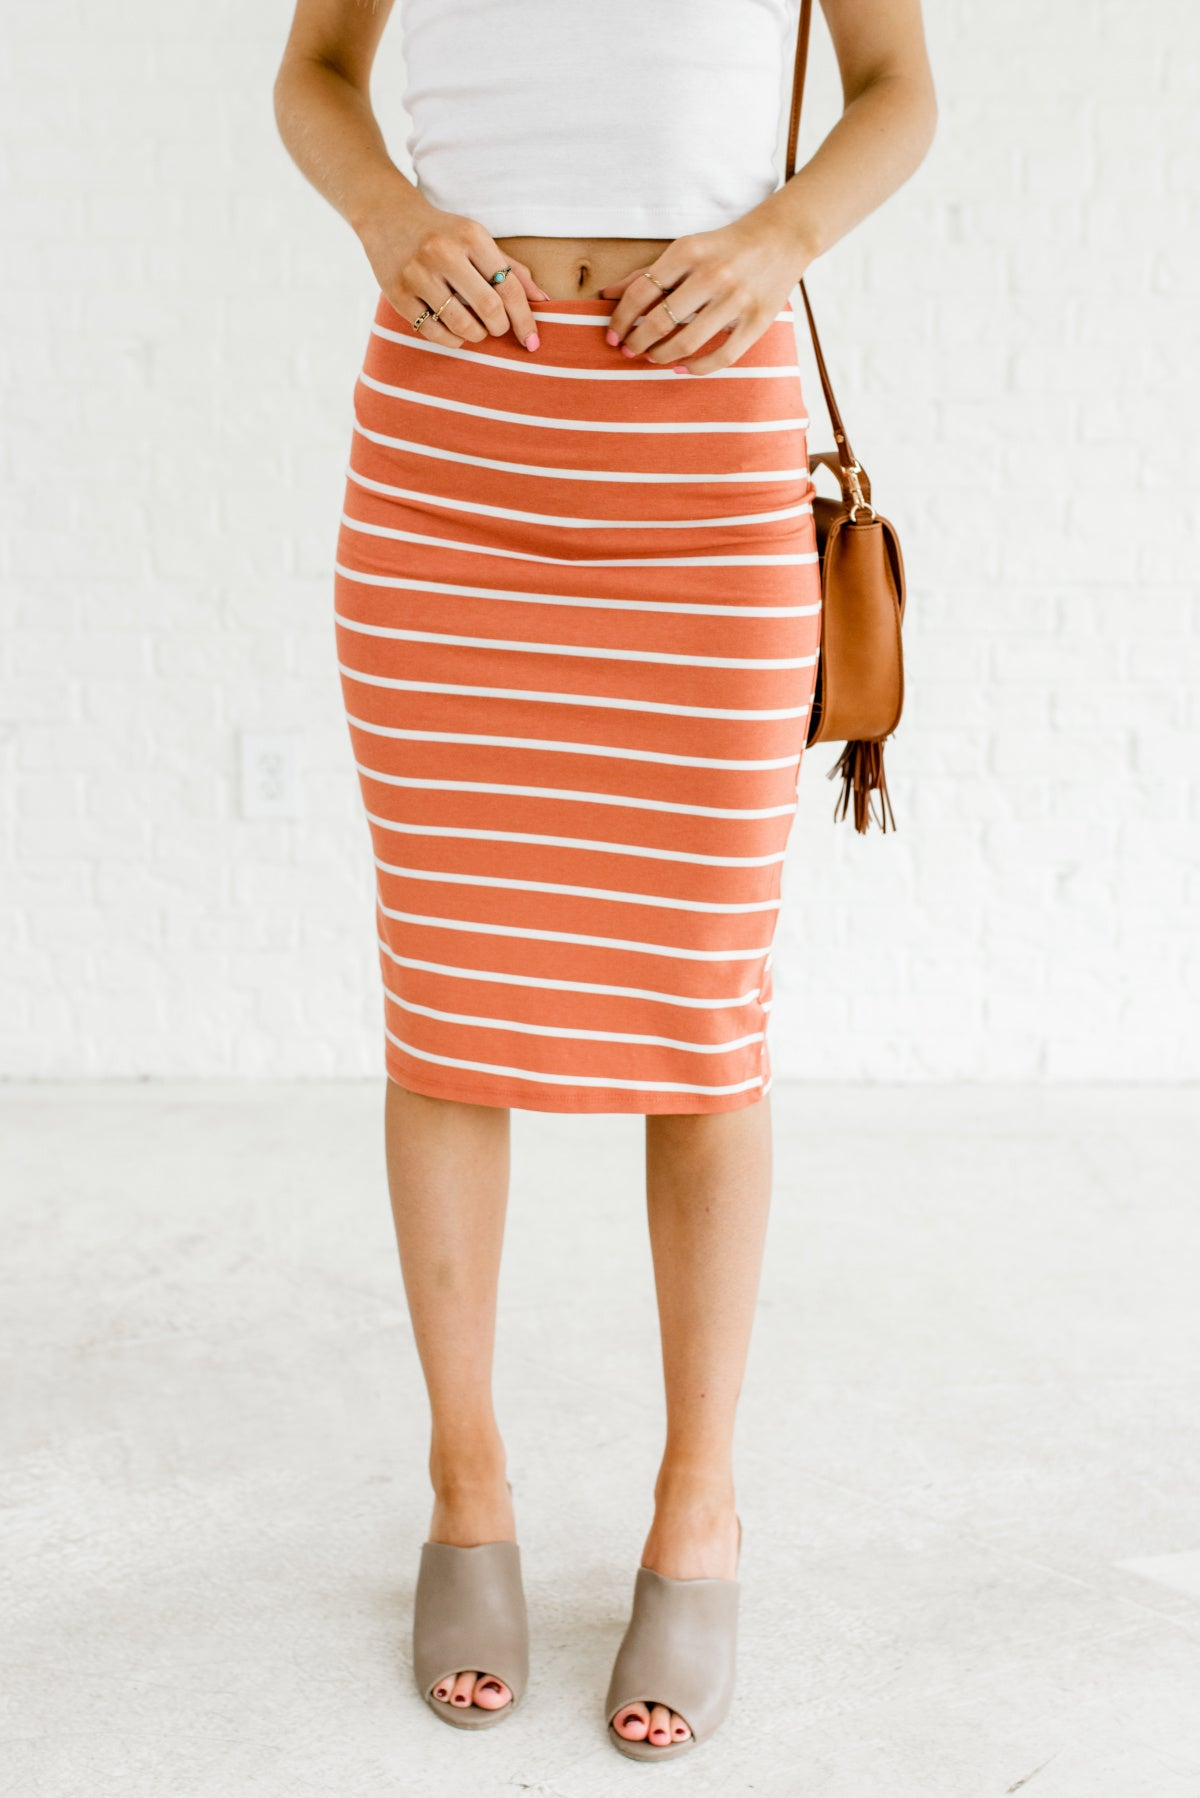 Terracotta Orange and White Striped Boutique Knee-Length Skirts for Women